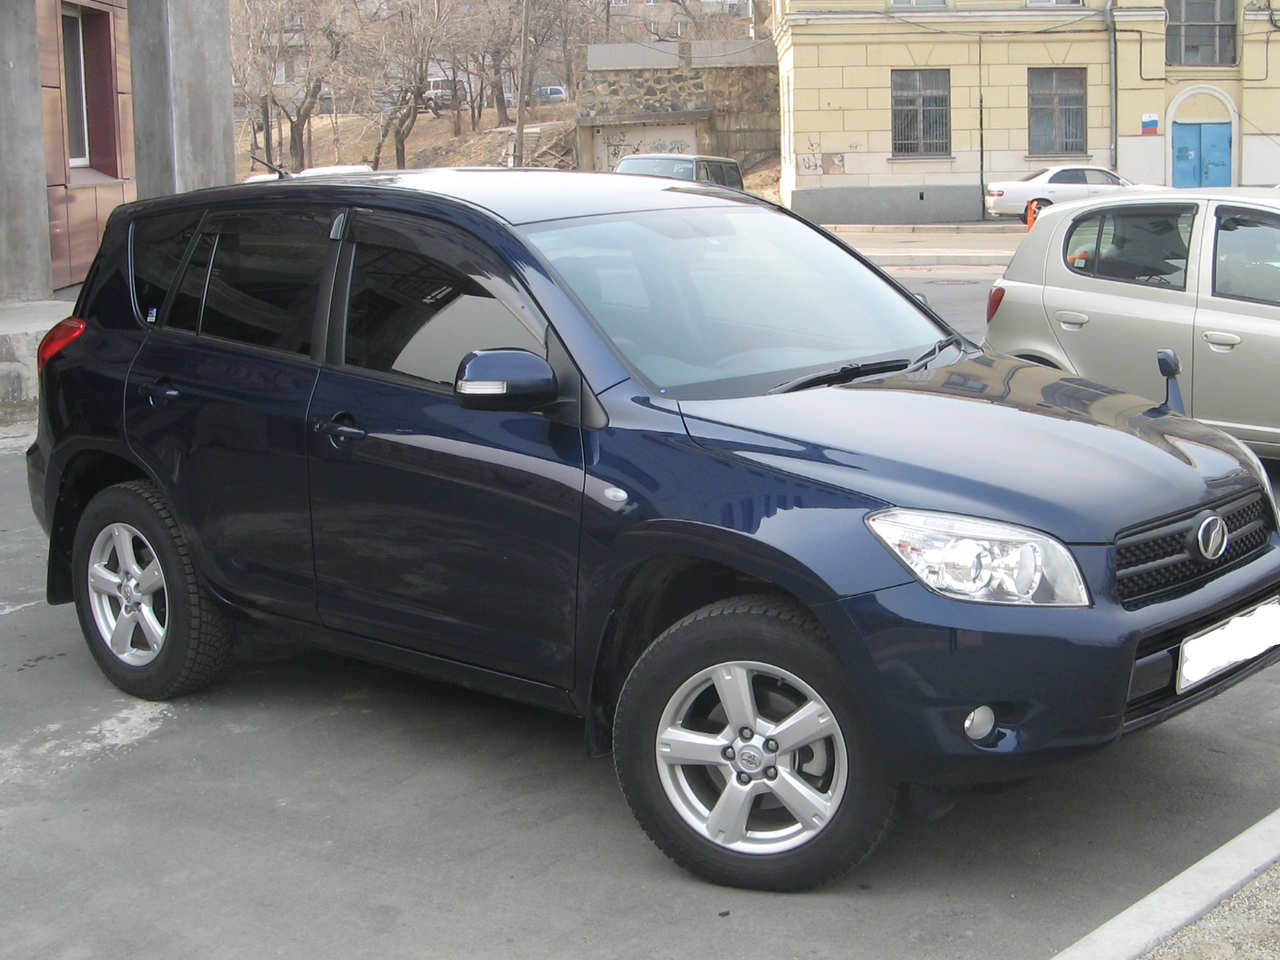 used 2005 toyota rav4 photos 2 4 gasoline automatic for sale. Black Bedroom Furniture Sets. Home Design Ideas